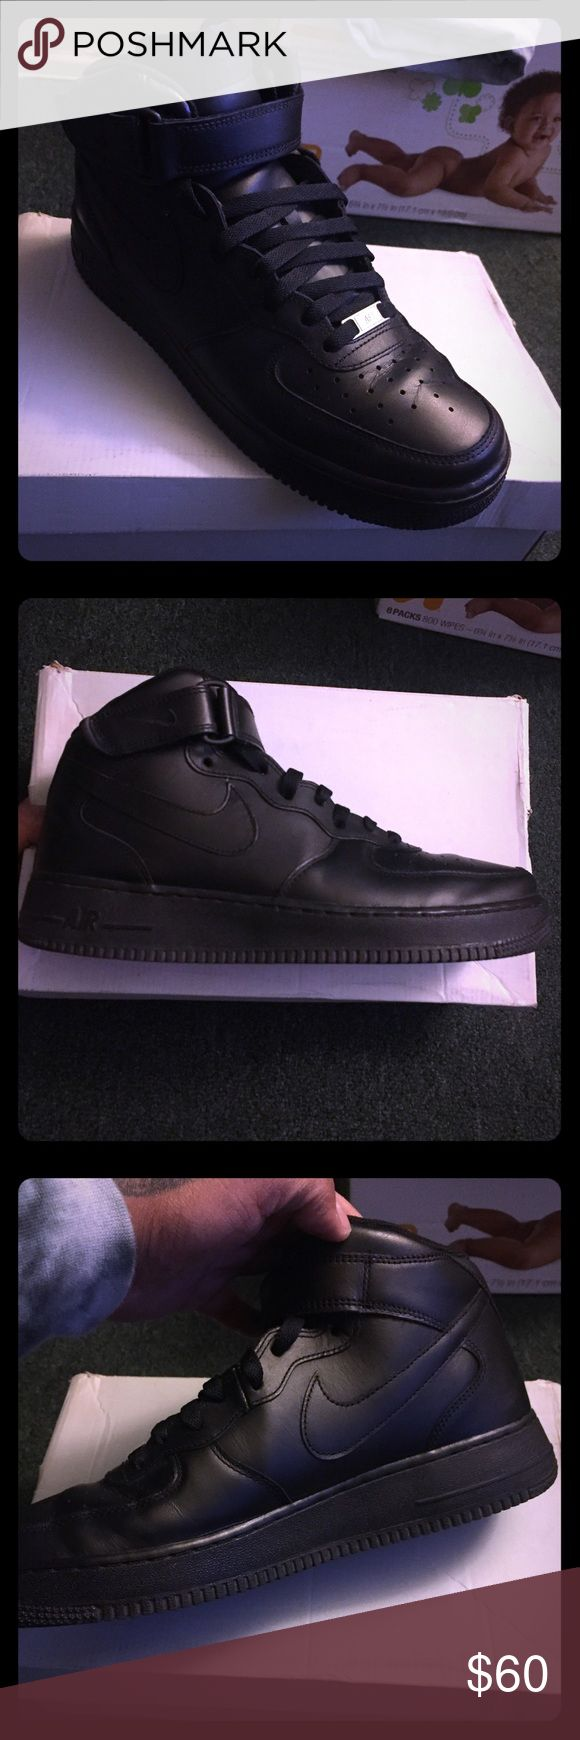 Nike Air Force One Mids All Black , worn a couple of times fits me big,  , $50 Pay pal Nike Shoes Sneakers